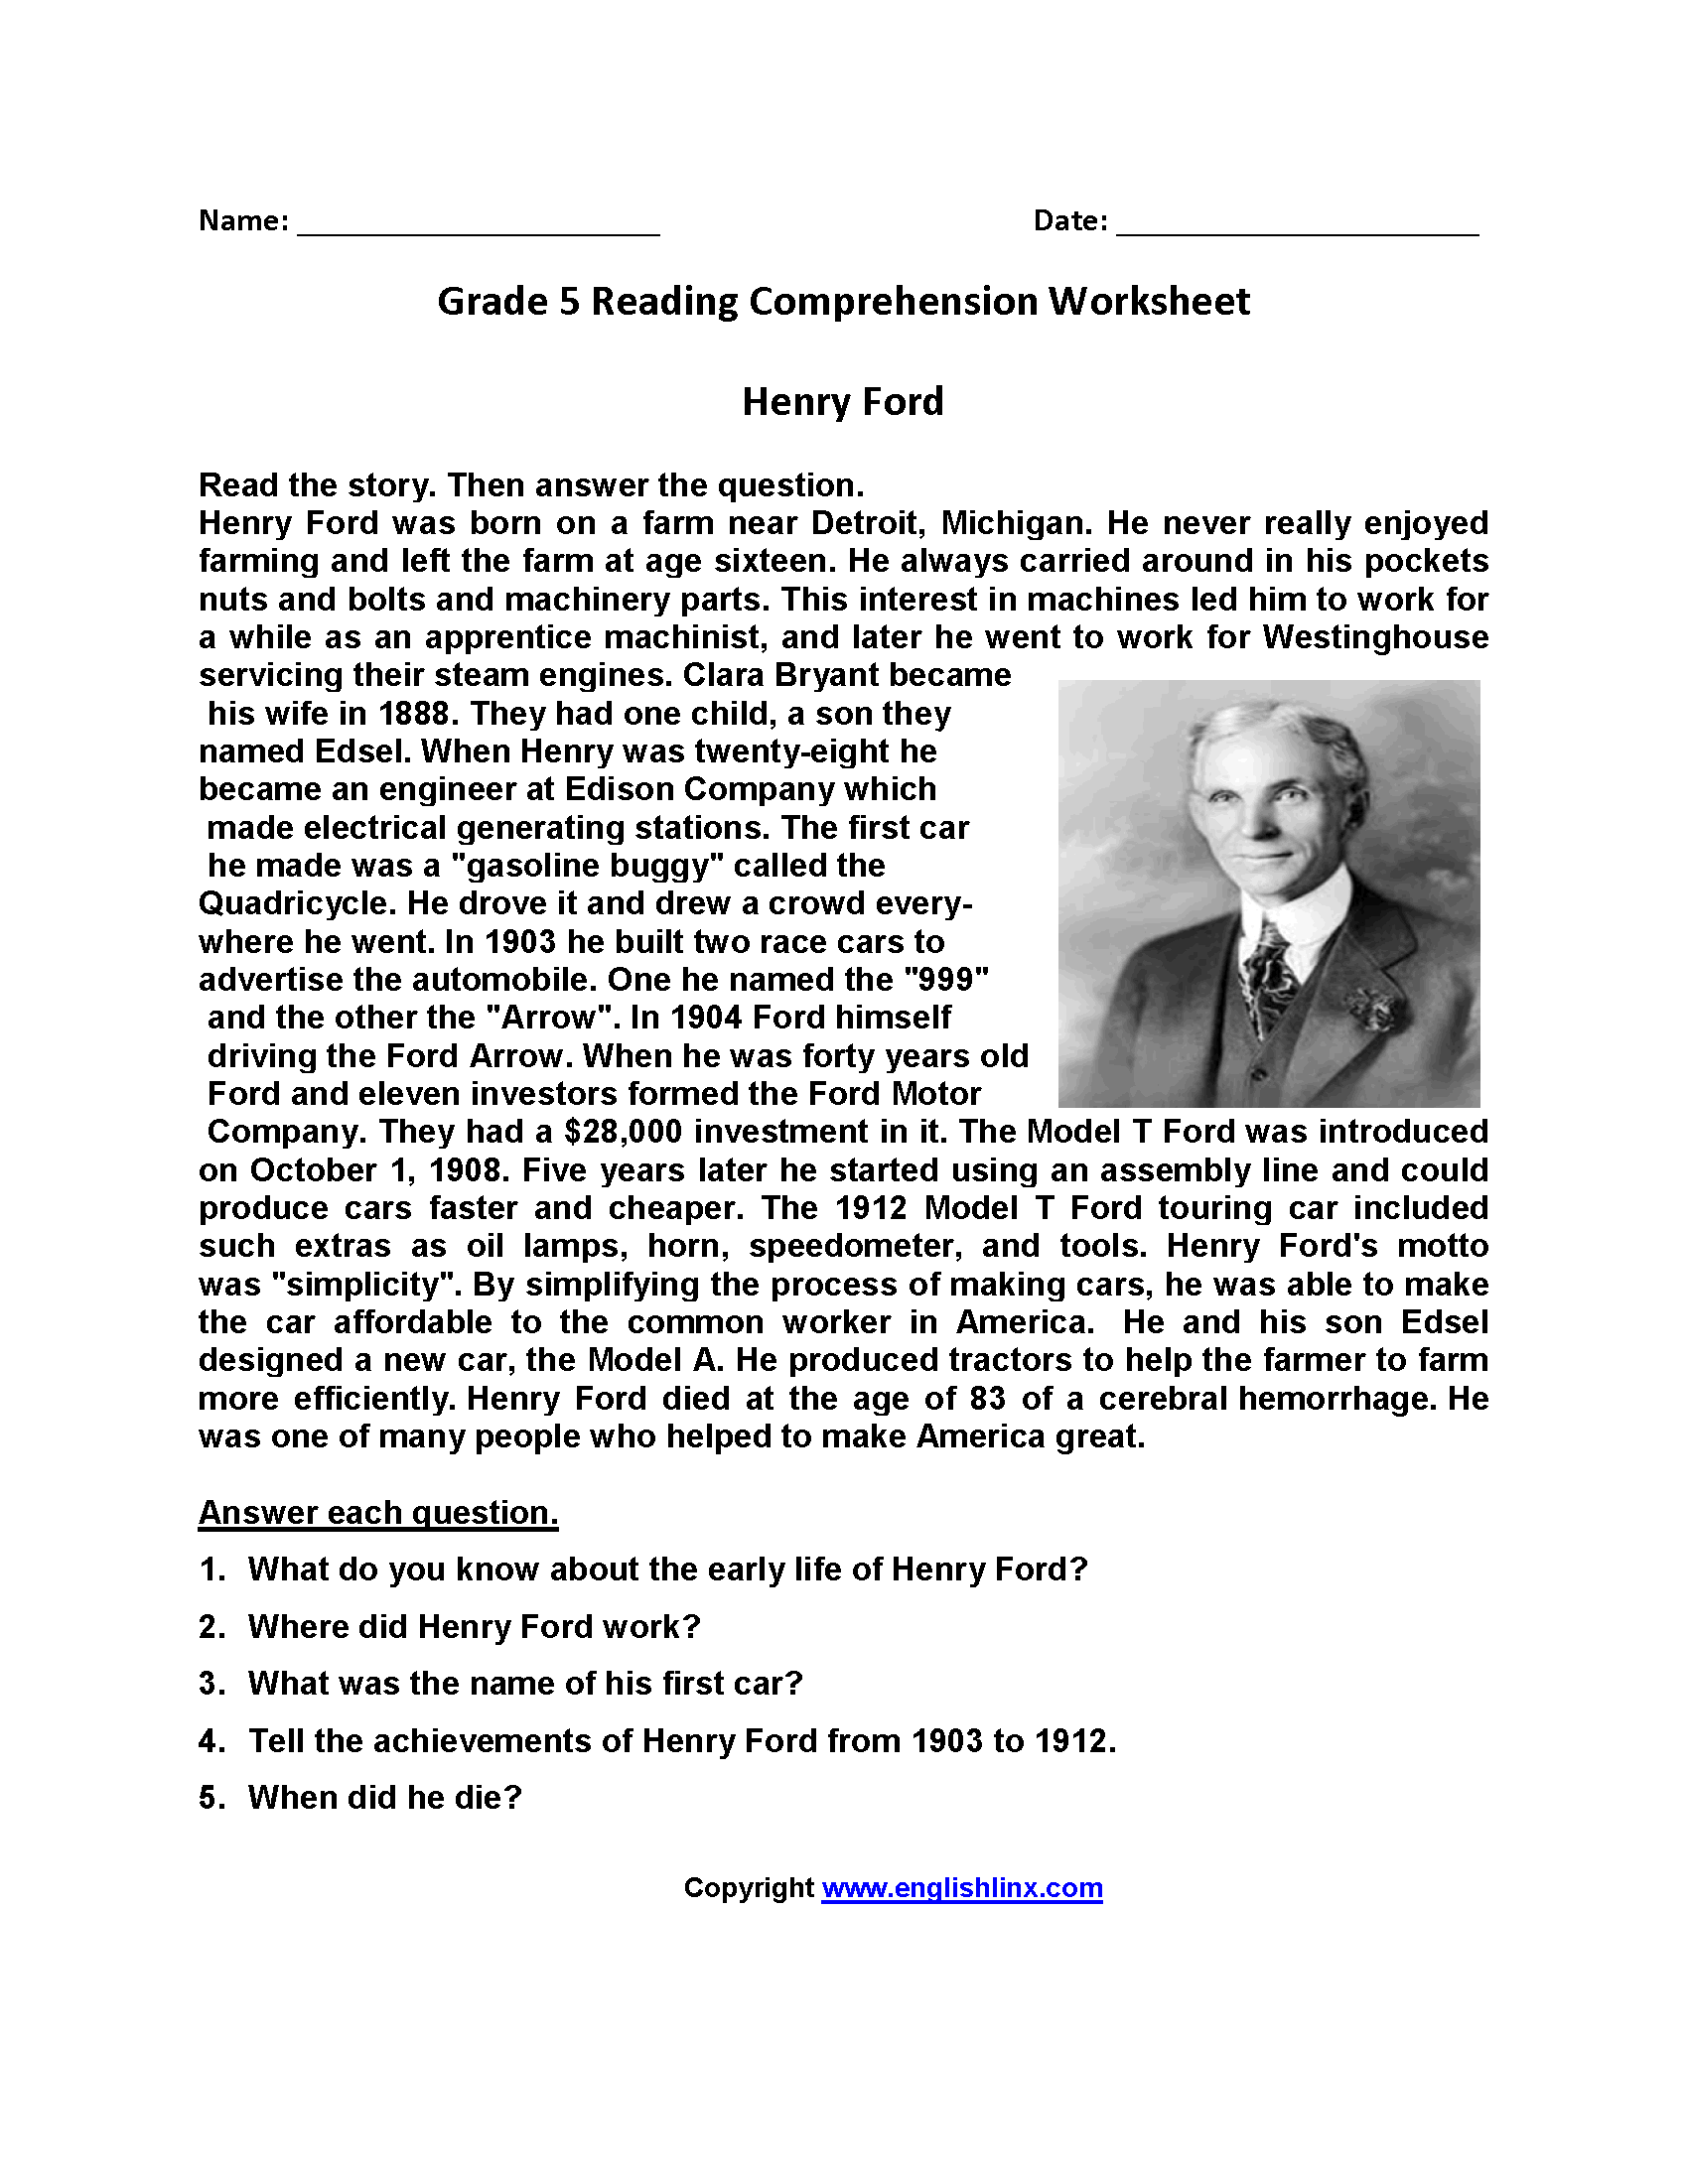 Worksheet Free 5th Grade Reading Comprehension Worksheets Grass Fedjp Worksheet Study Site